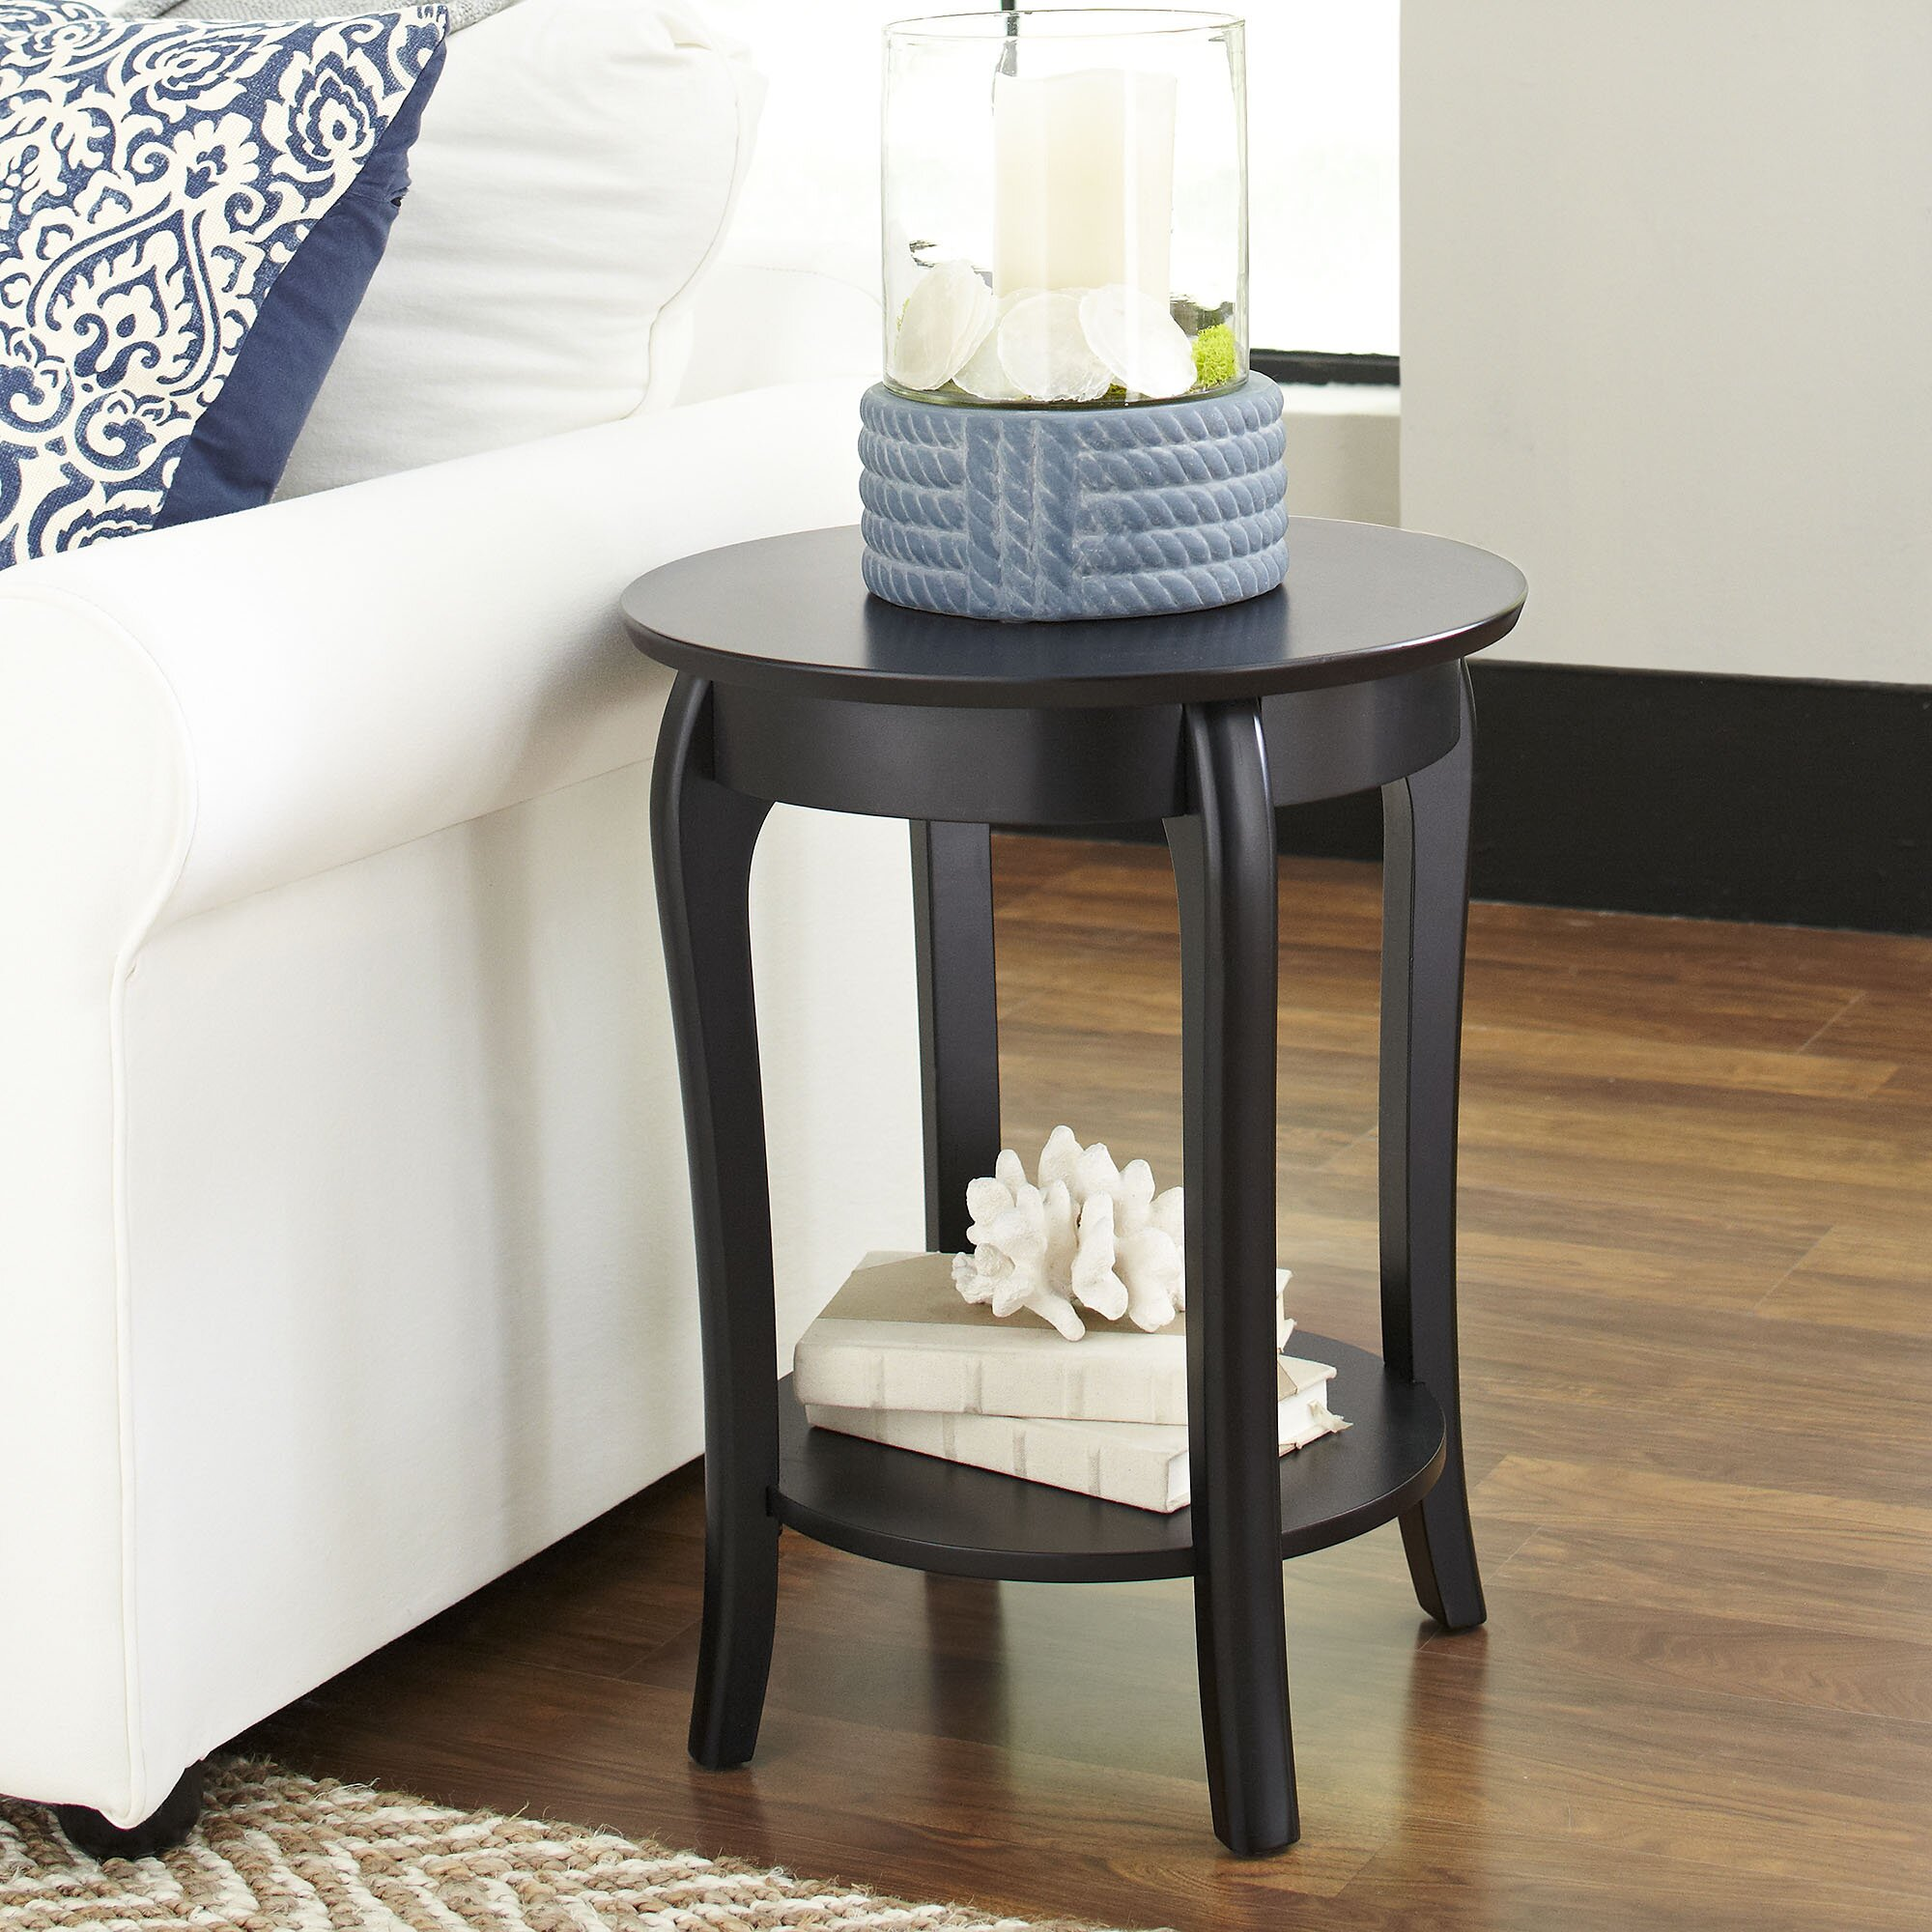 Round side tables - Alberta Round Side Table